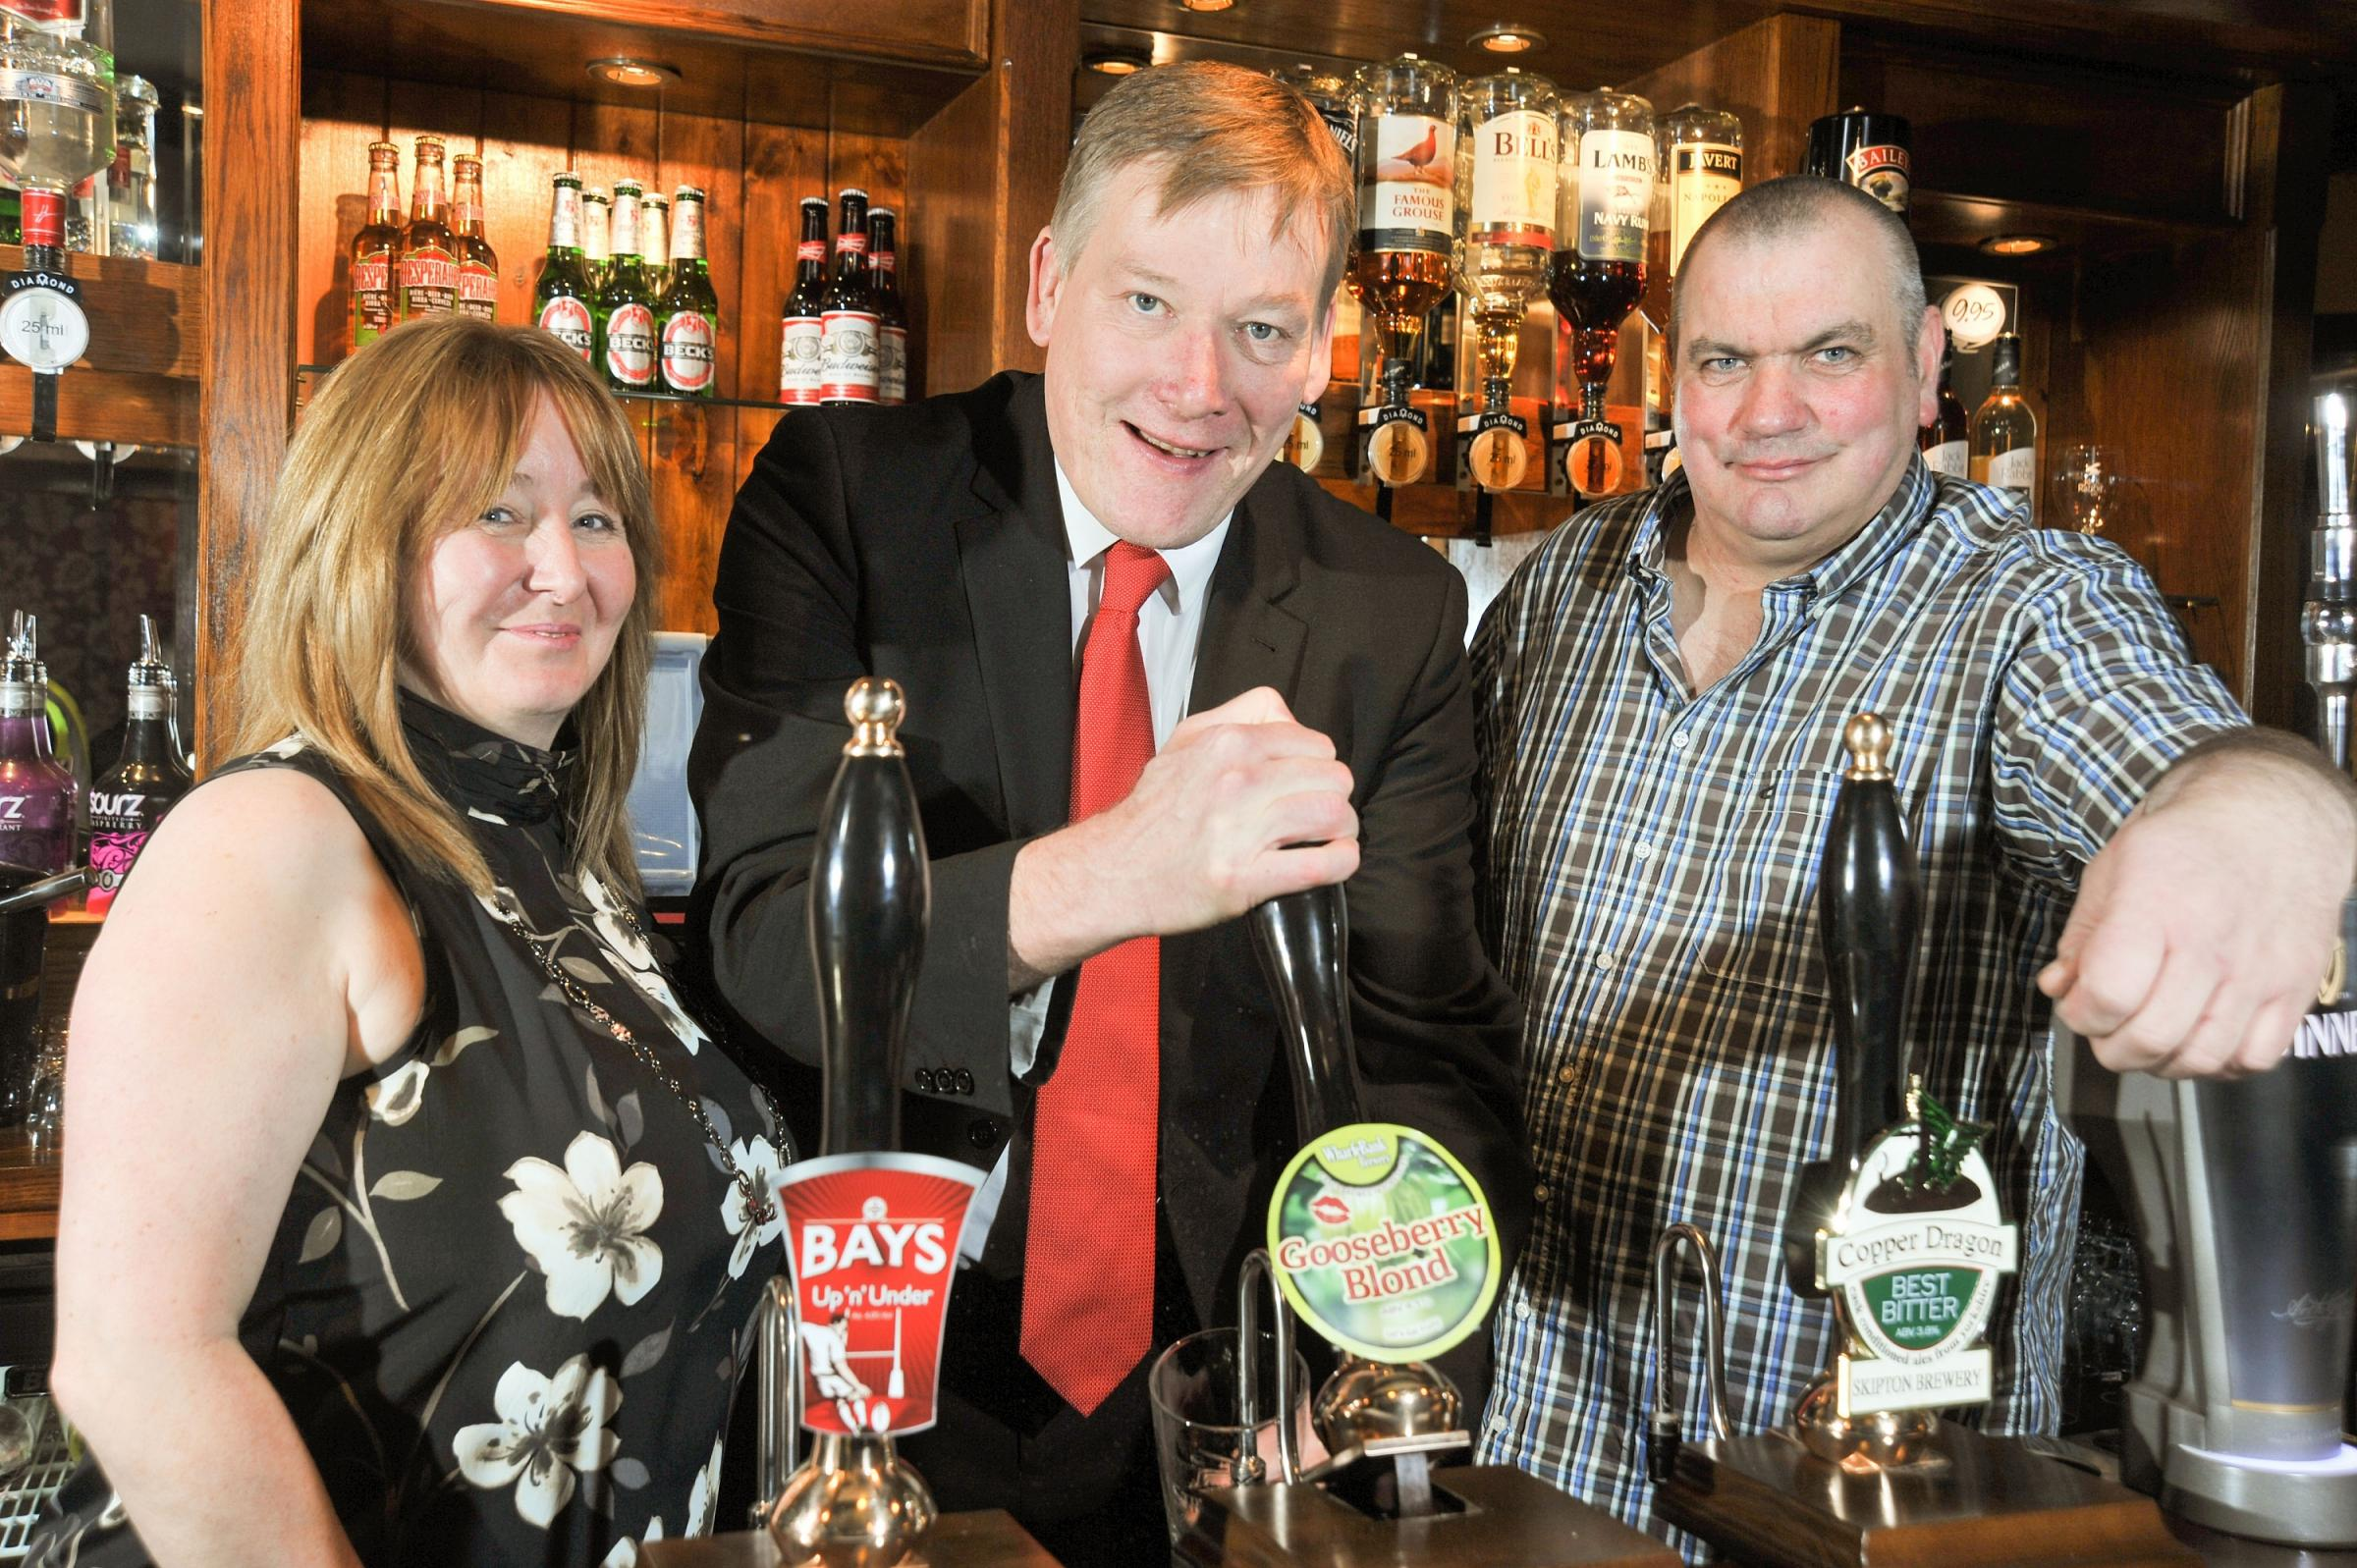 At the reopening of the Robin Hood pub in Silsden after its refurbishment, from left, licensee Sue Robinson, MP Kris Hopkins and licensee Darren Robinson